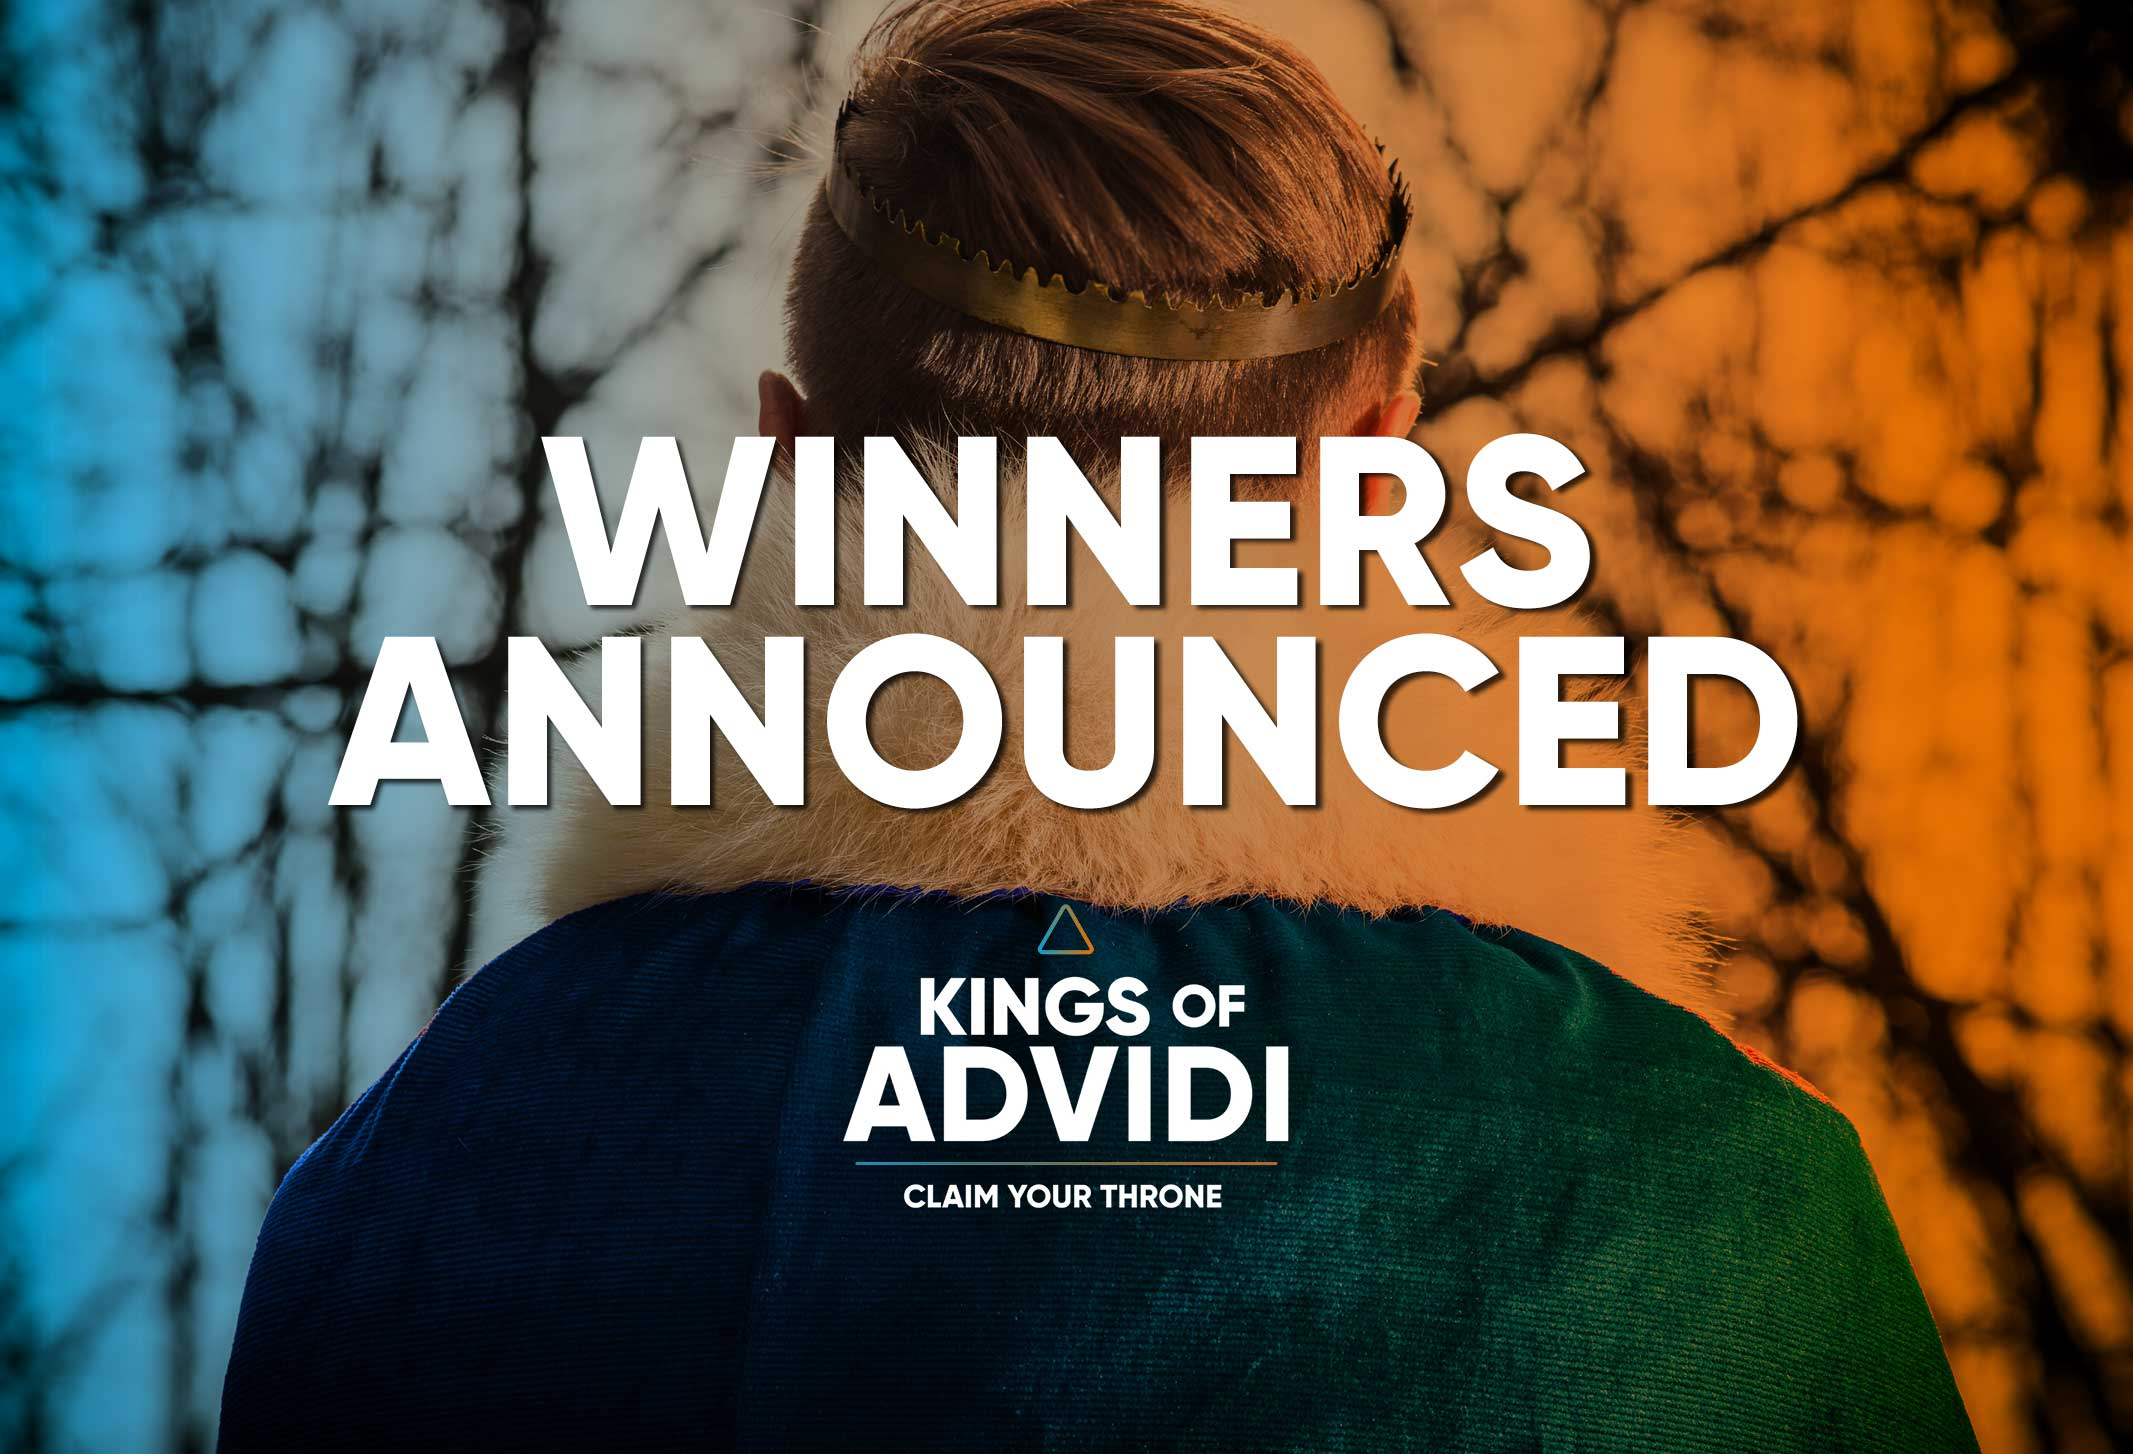 Who Claimed The Throne? (Kings of Advidi Winners Announced!)